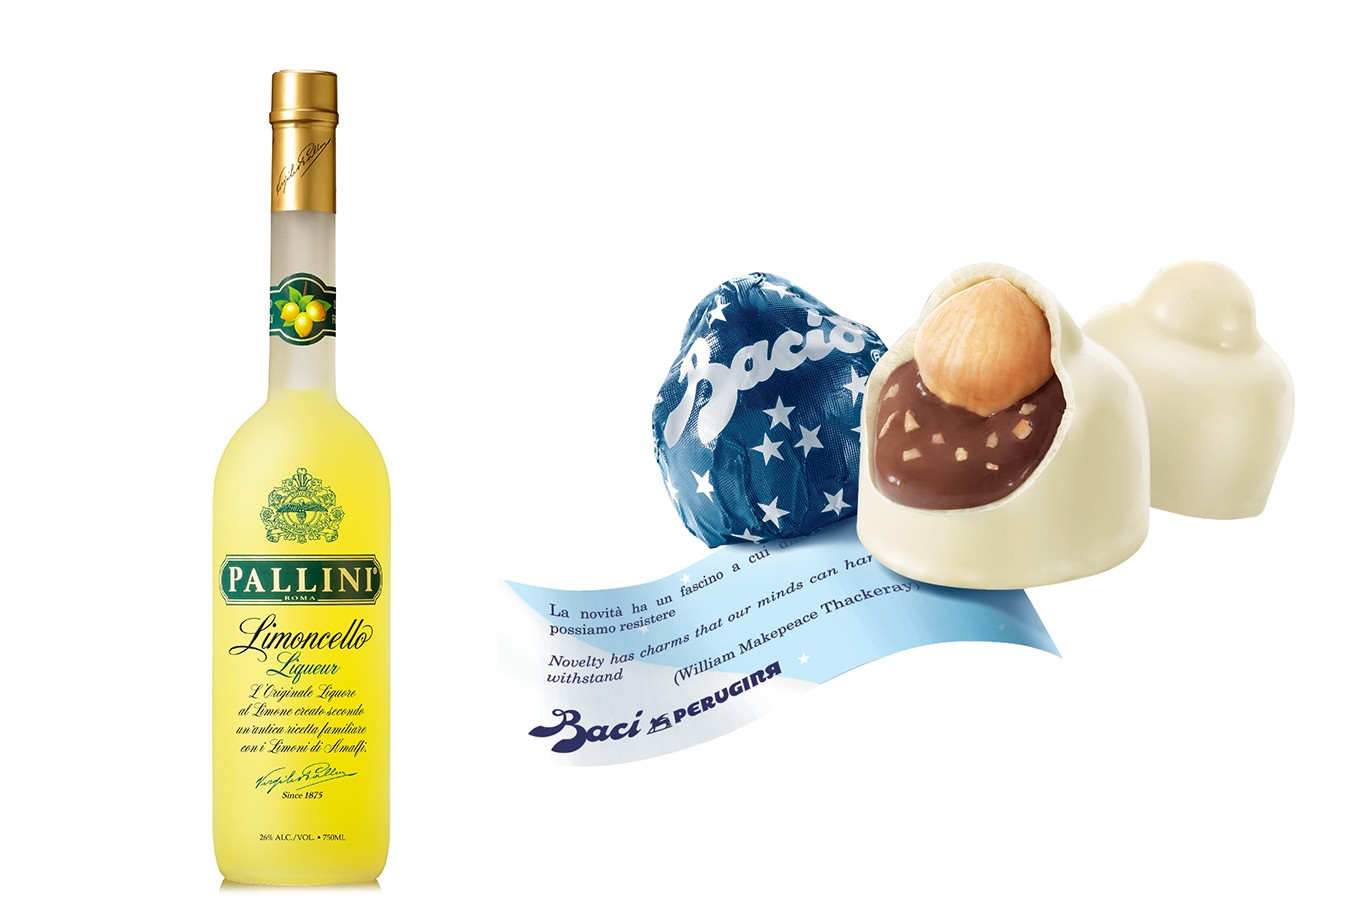 ITALY - Drink: Limoncello, a lemon liqueur mainly produced in southern Italy and best served chilled as an after-dinner digestive. It is a perfect drink after a meal, especially when paired with the typical Italian almond biscuits called cantucci. <br> <br> Eat: Baci perugina–fine, small and dark chocolates filled with chocolate-hazelnut cream and a whole hazelnut. Created in 1922, they represent a long history of Italian excellence by Perugina (baciperugina.com), a master in chocolate making. Apart from a taste that will indulge your palate, each piece is wrapped in a collectable message of love and friendship. (Michela Magri, Director of the Italian Cultural Institute)